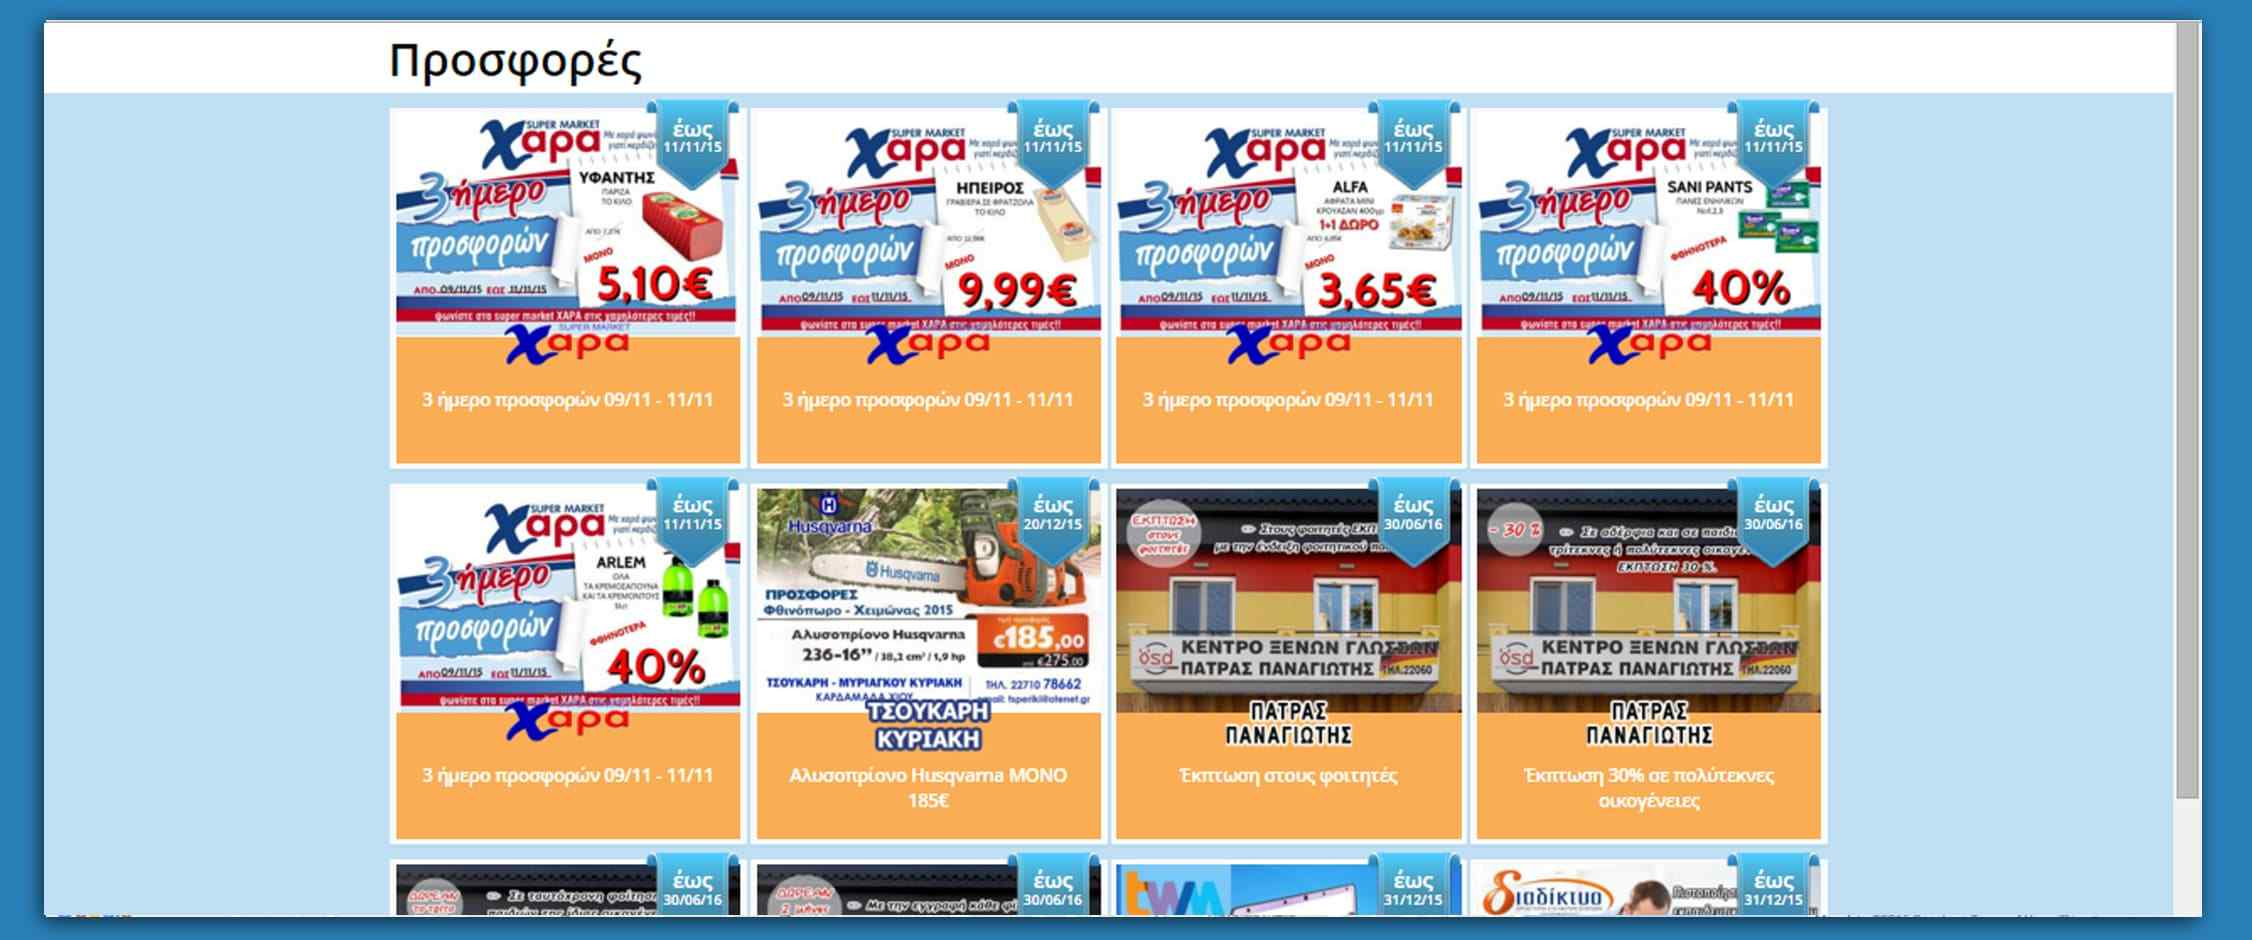 mastropantelis-special-offers